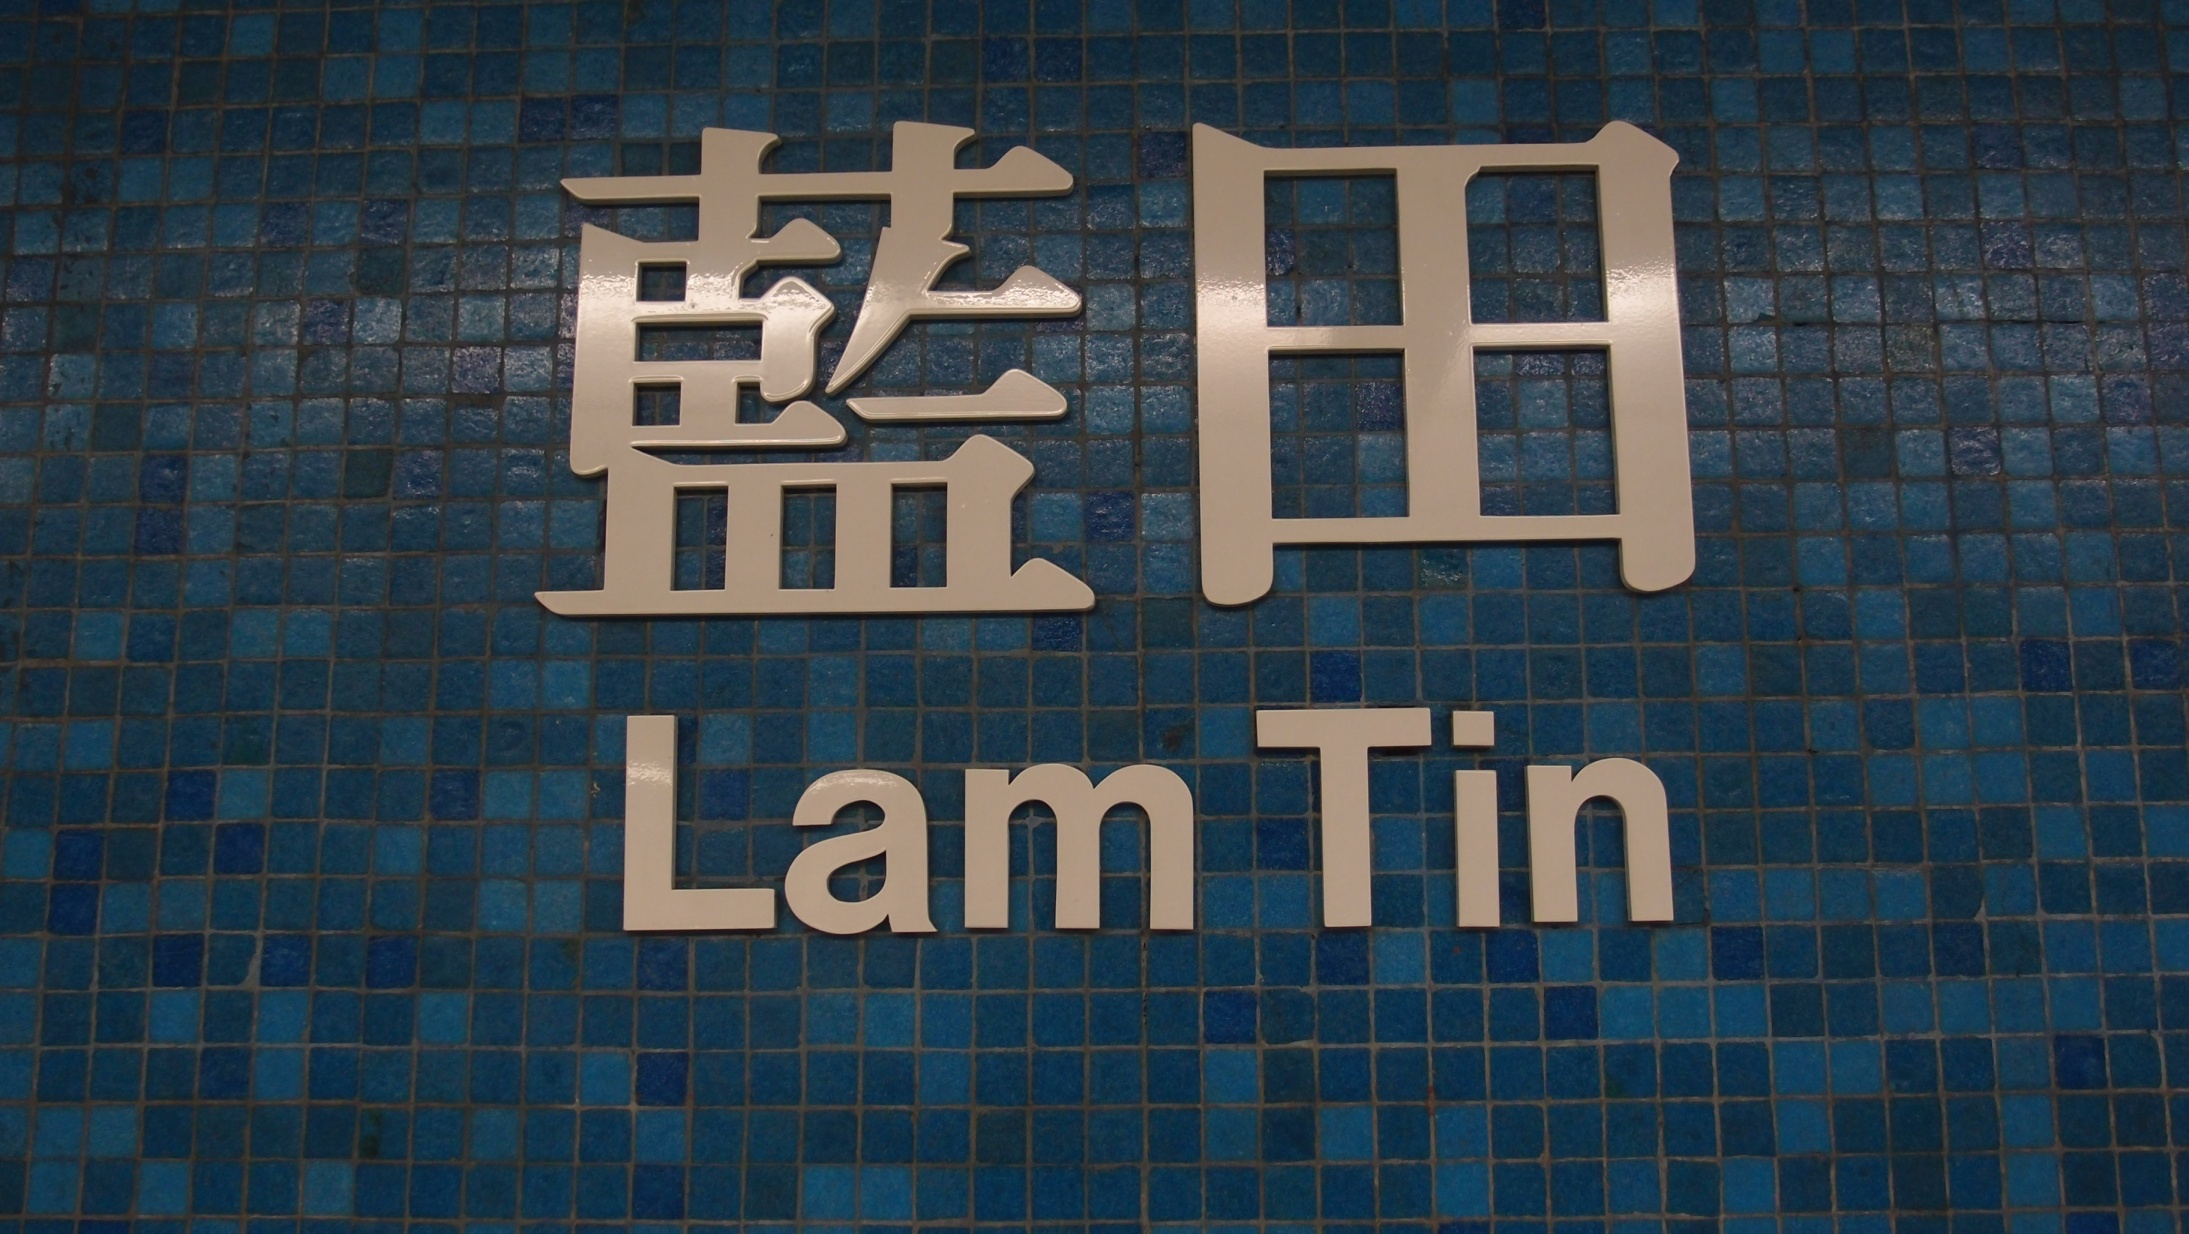 We once lived in Lam Tin.